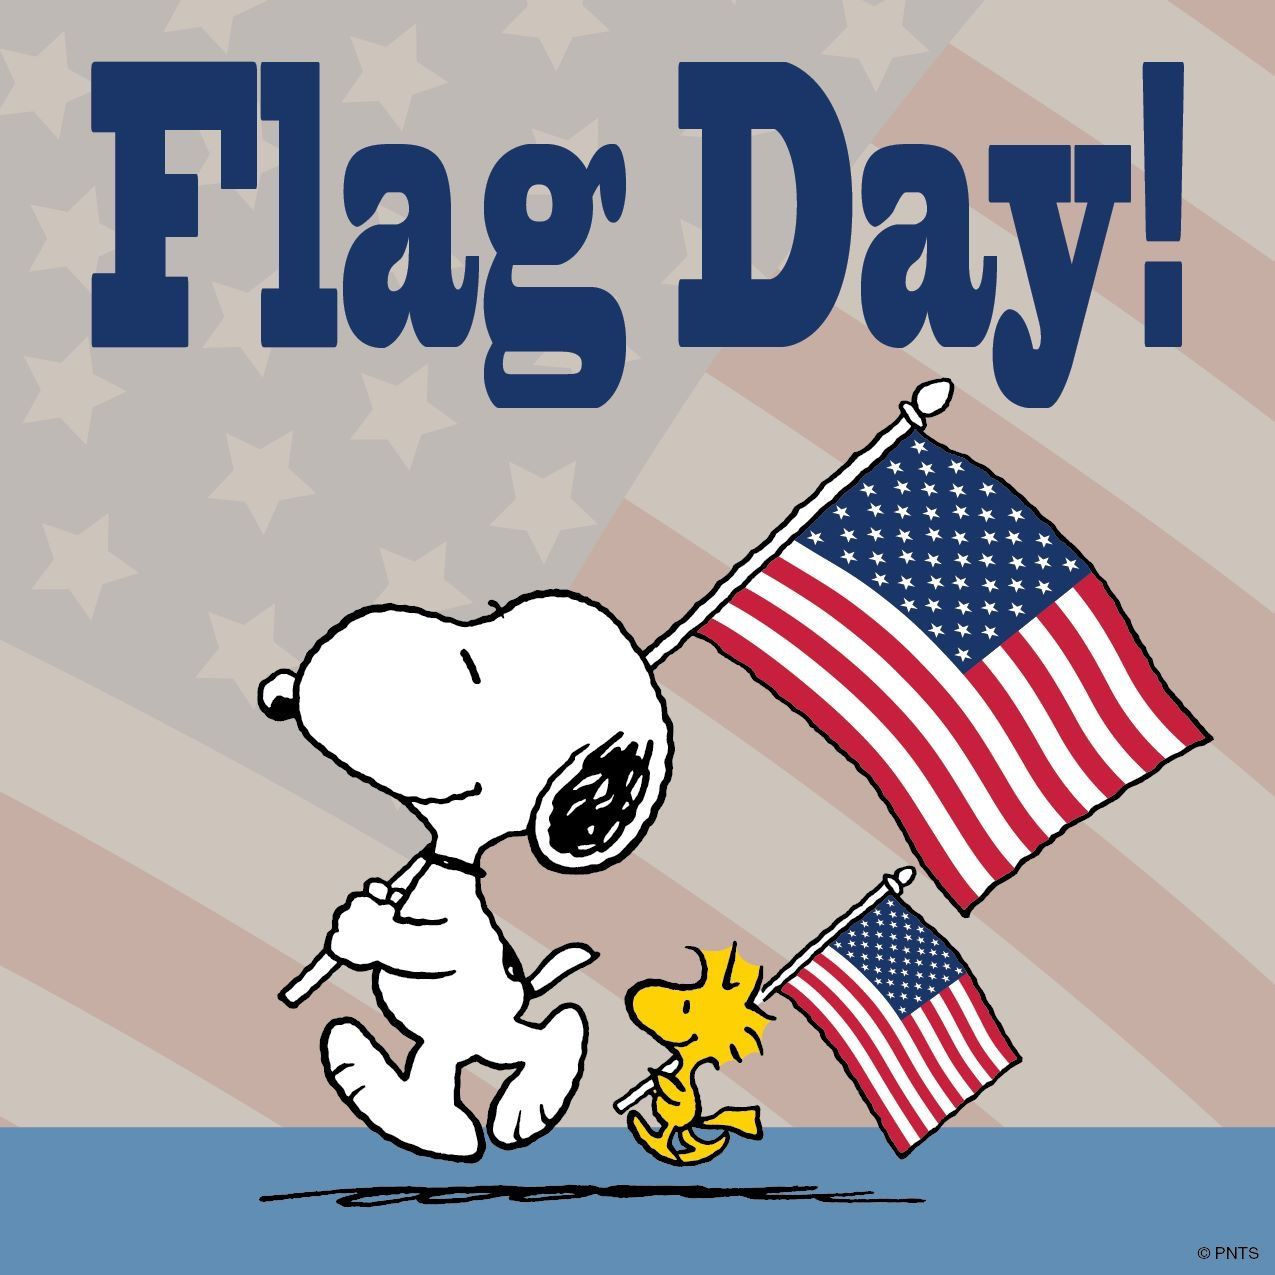 It's Flag Day! Snoopy, Snoopy and woodstock, Charlie